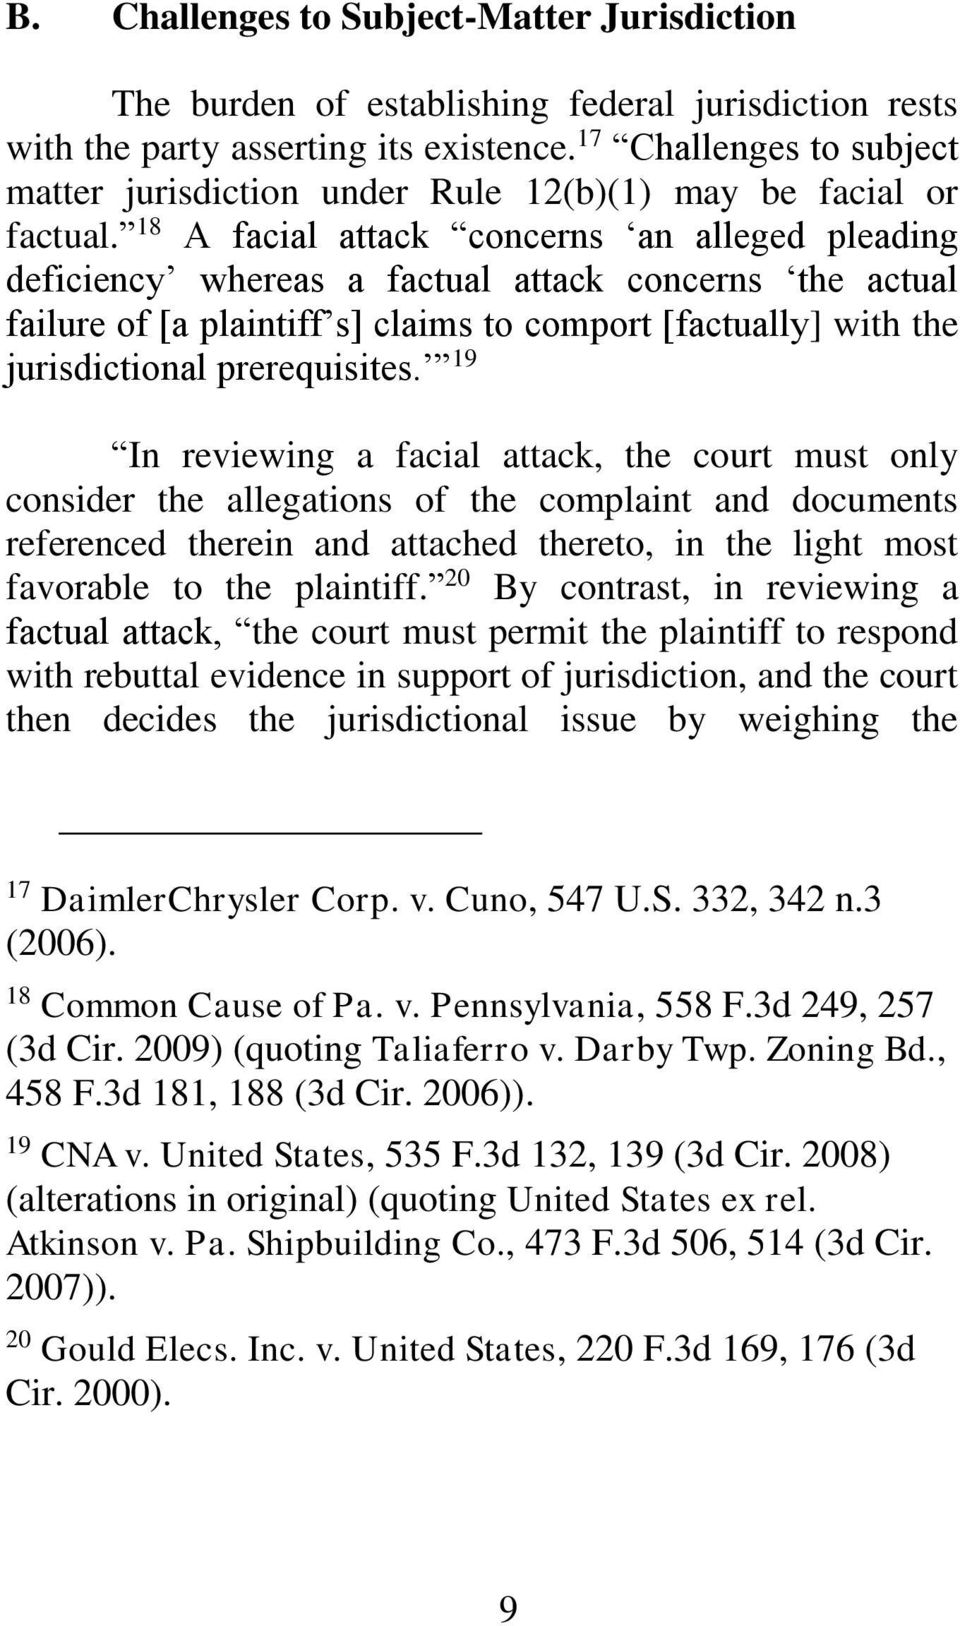 18 A facial attack concerns an alleged pleading deficiency whereas a factual attack concerns the actual failure of [a plaintiff s] claims to comport [factually] with the jurisdictional prerequisites.